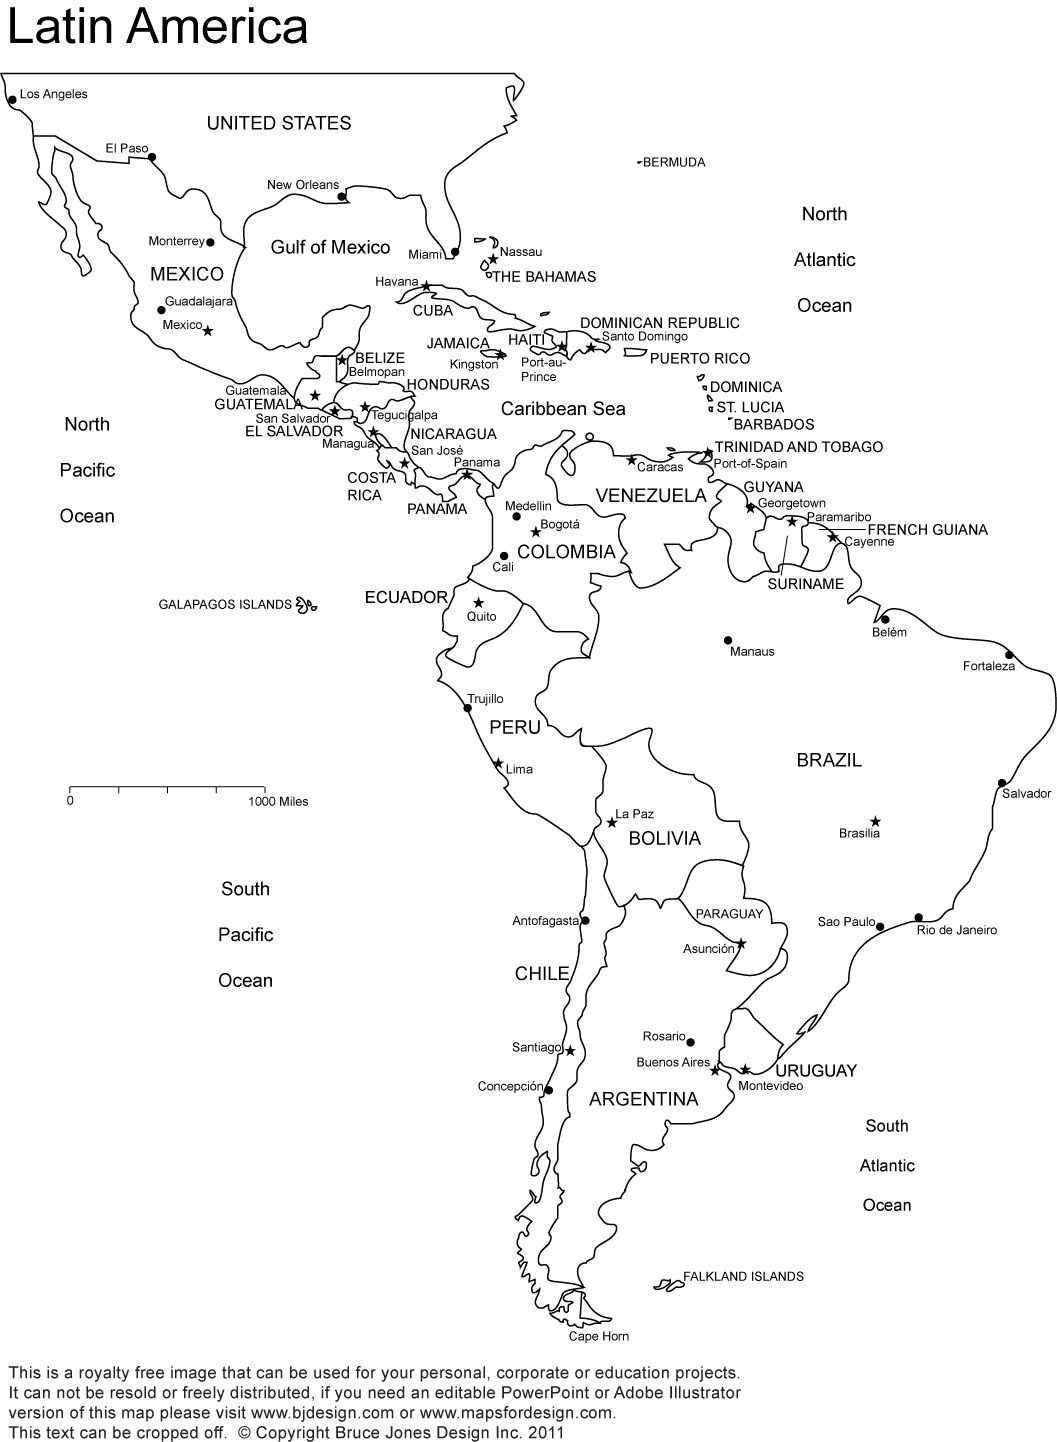 Latin America printable, blank map, south america, brazil